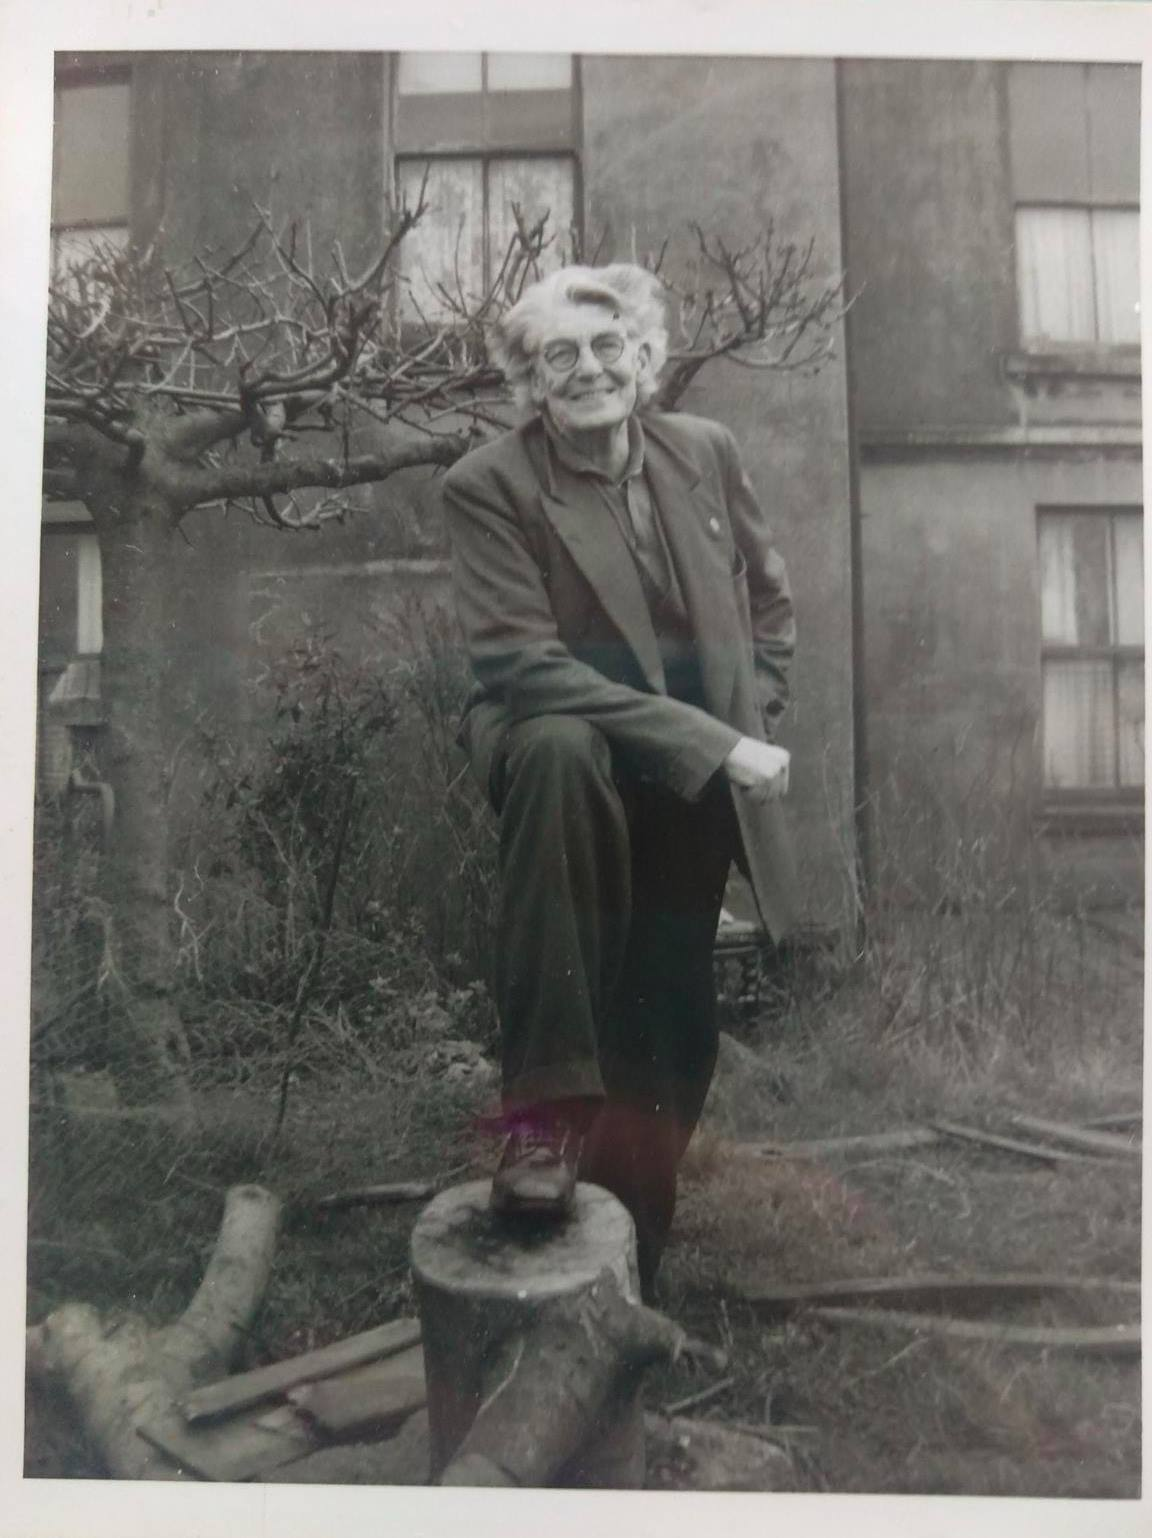 Joe at home in the 1950s